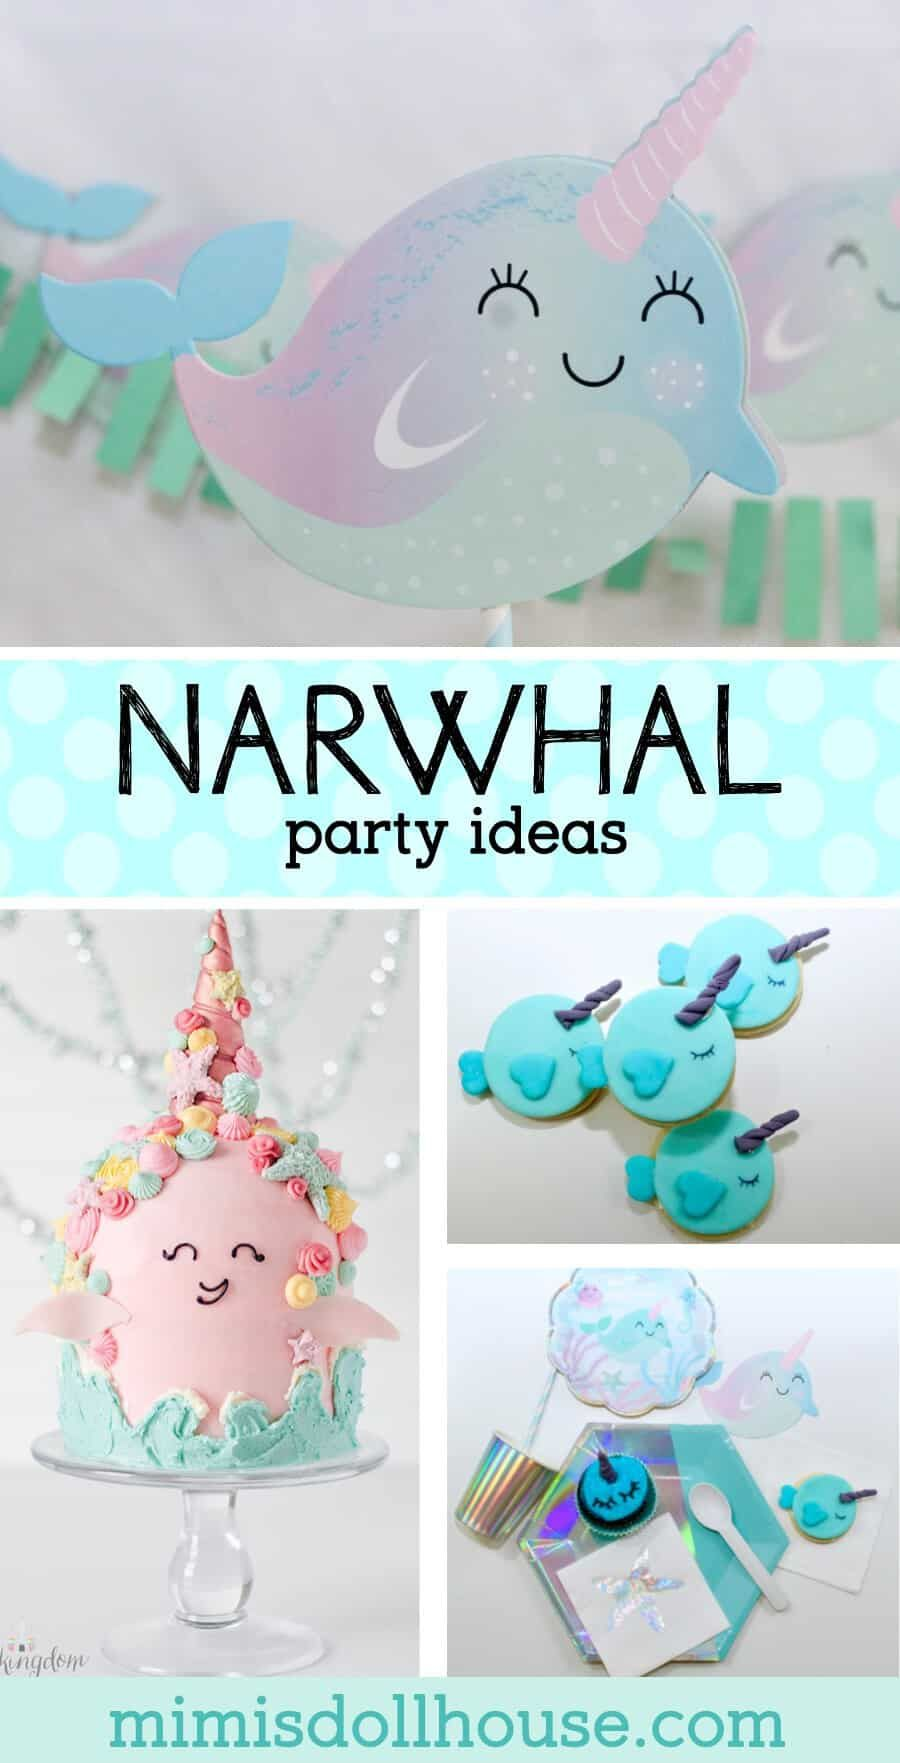 Delightful Narwhal Birthday Party Ideas - Girls birthday party themes, Girl birthday themes, Fun birthday party, Birthday party themes, Birthday parties, Girls birthday party - Mystical sea creatures and glitter lovers rejoice! Adorable Narwhal Party Supplies and Ideas for a gorgeous party!